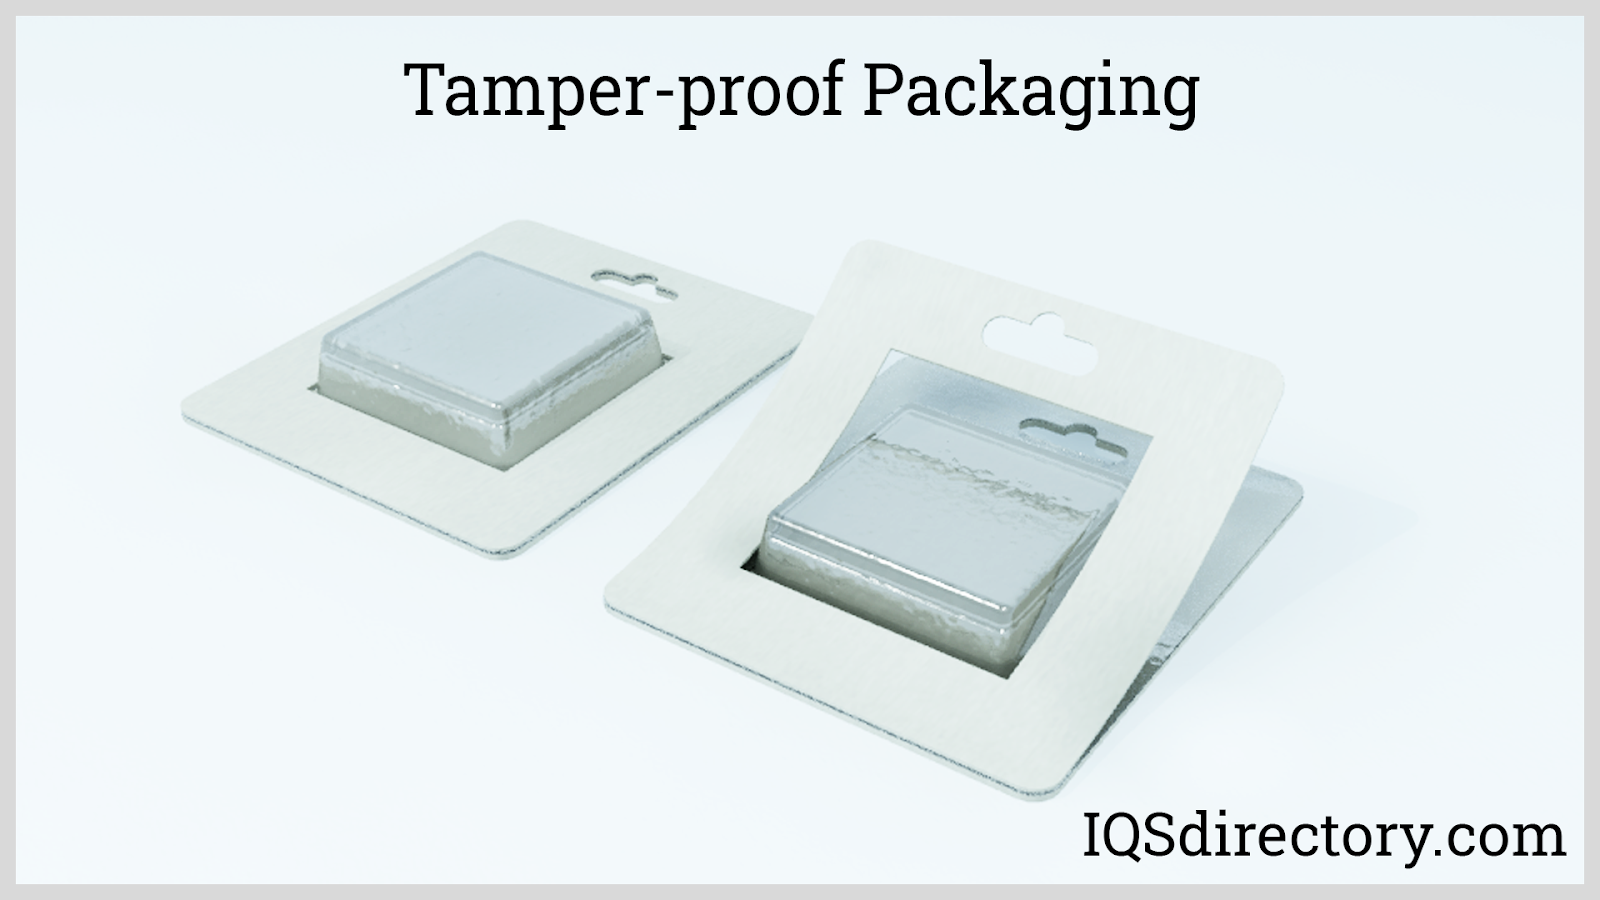 Tamper-Proof Packaging